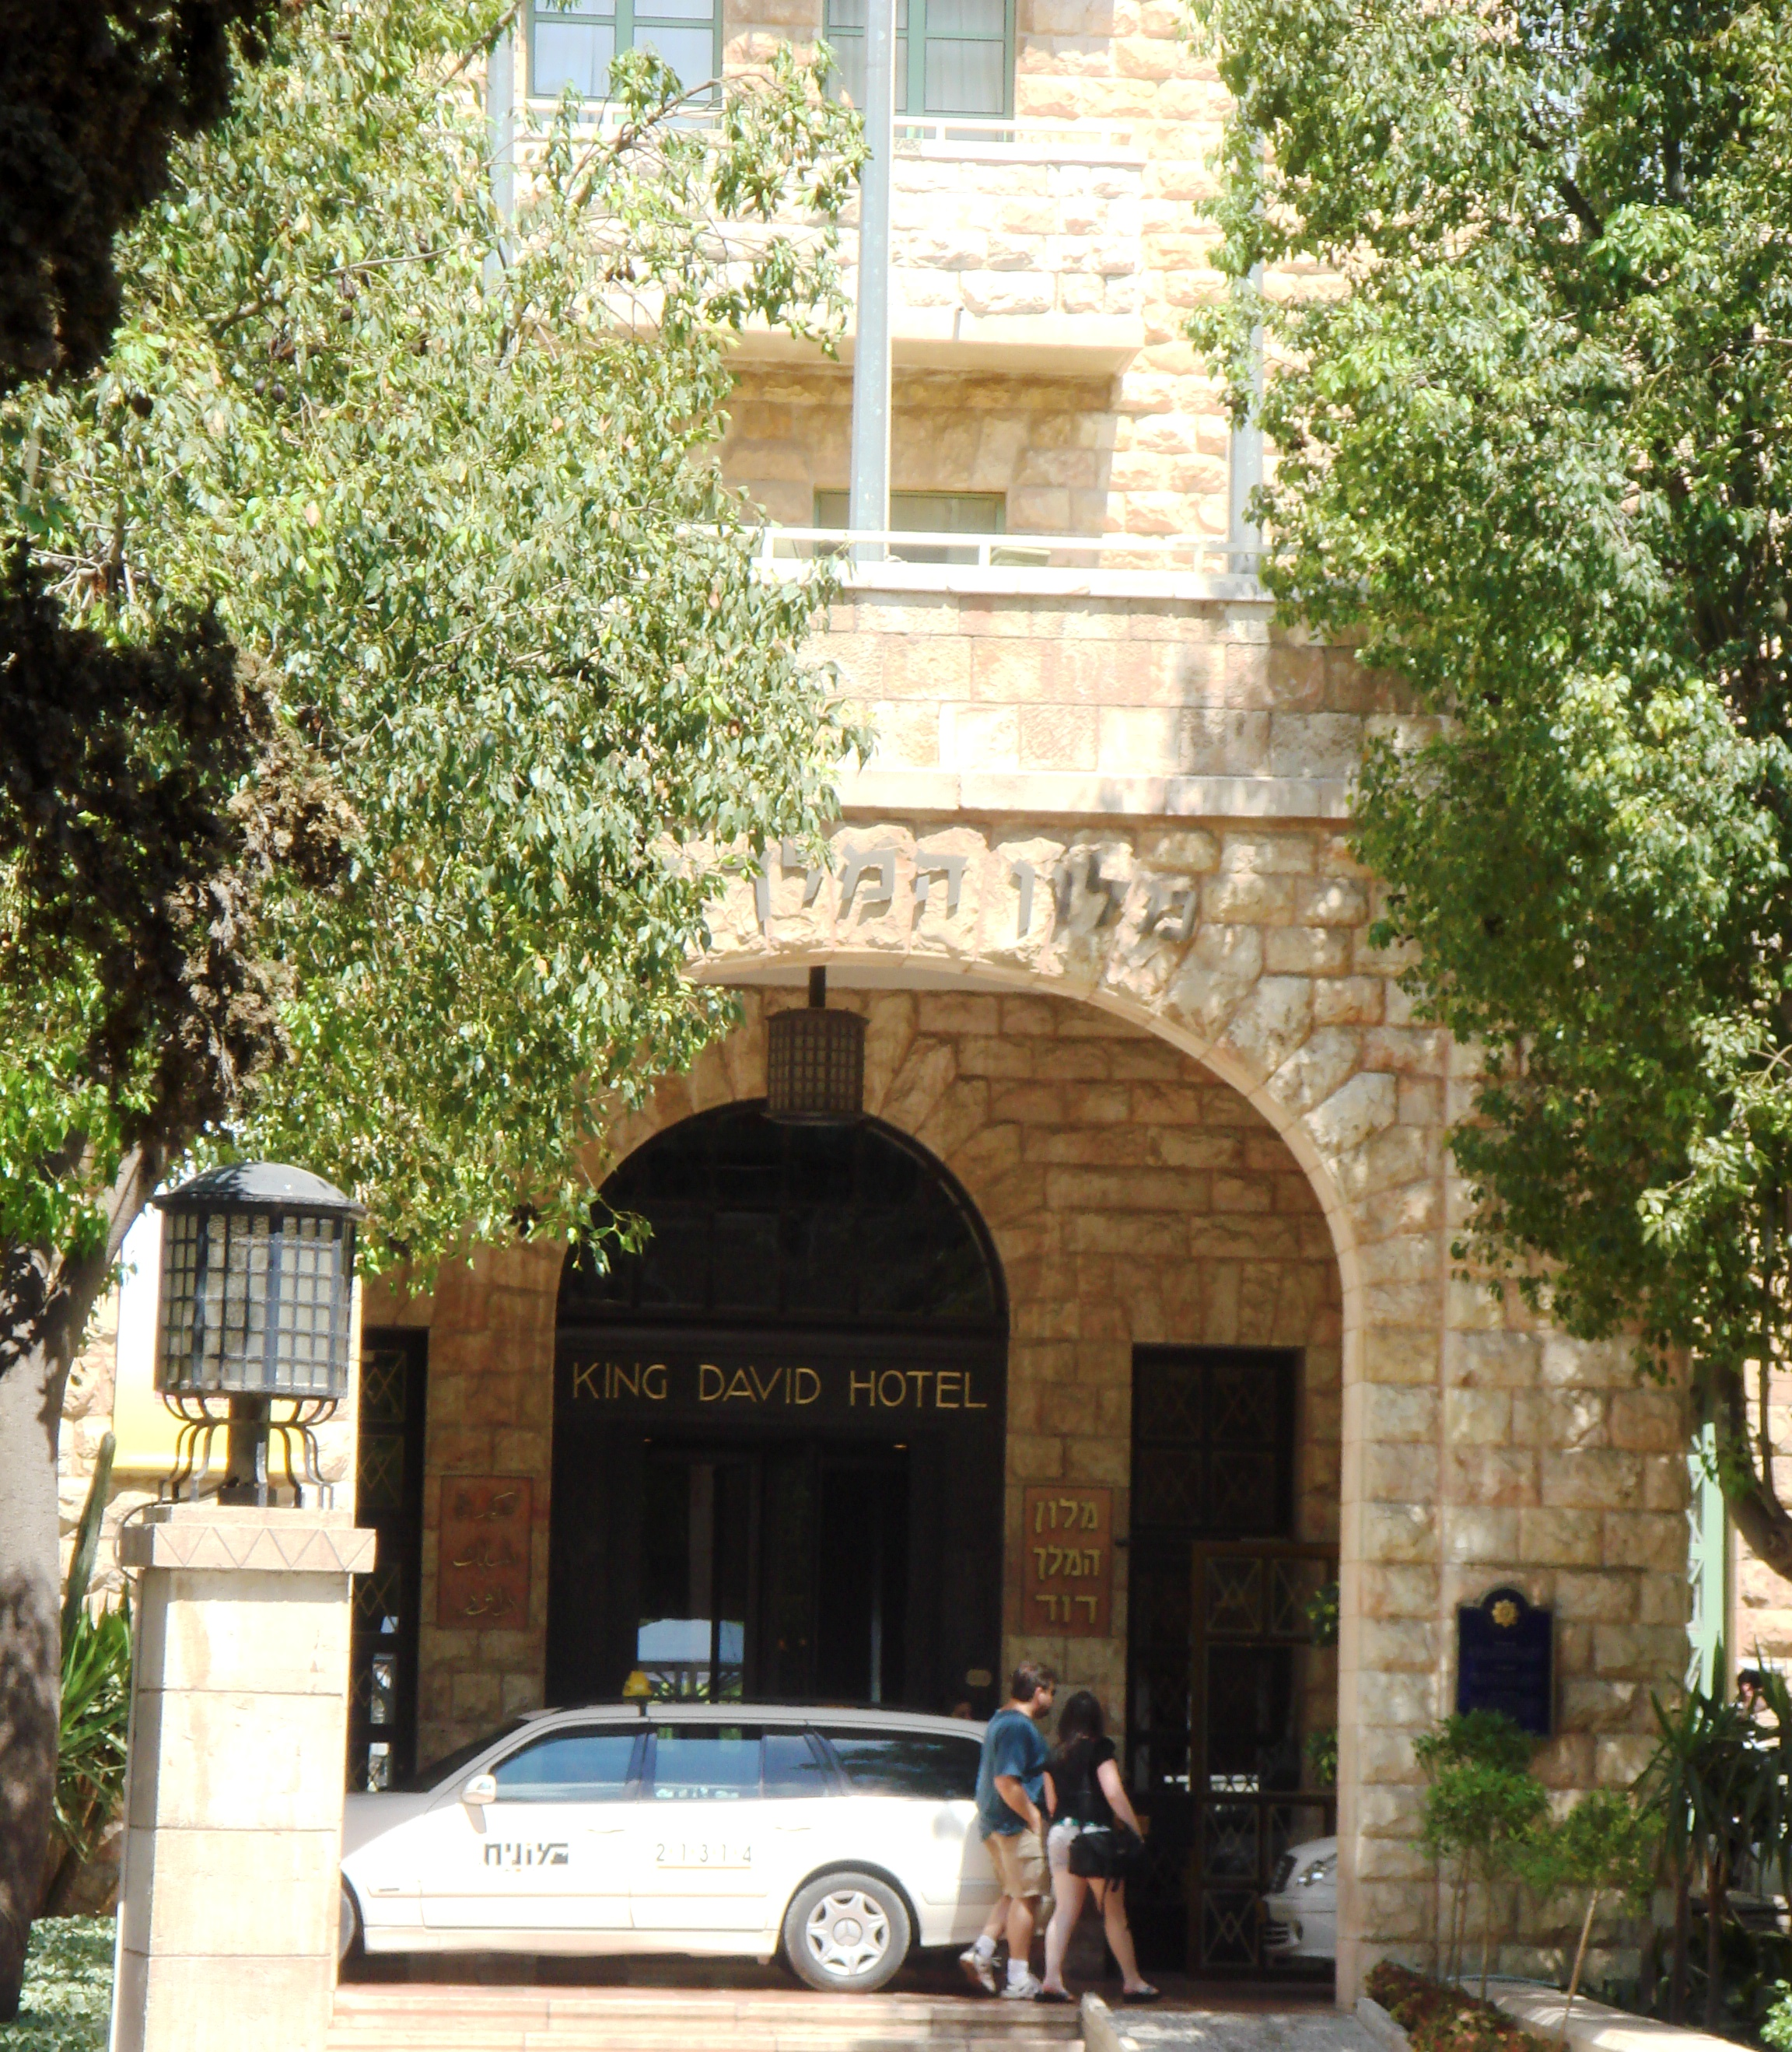 The entrance to the King David Hotel